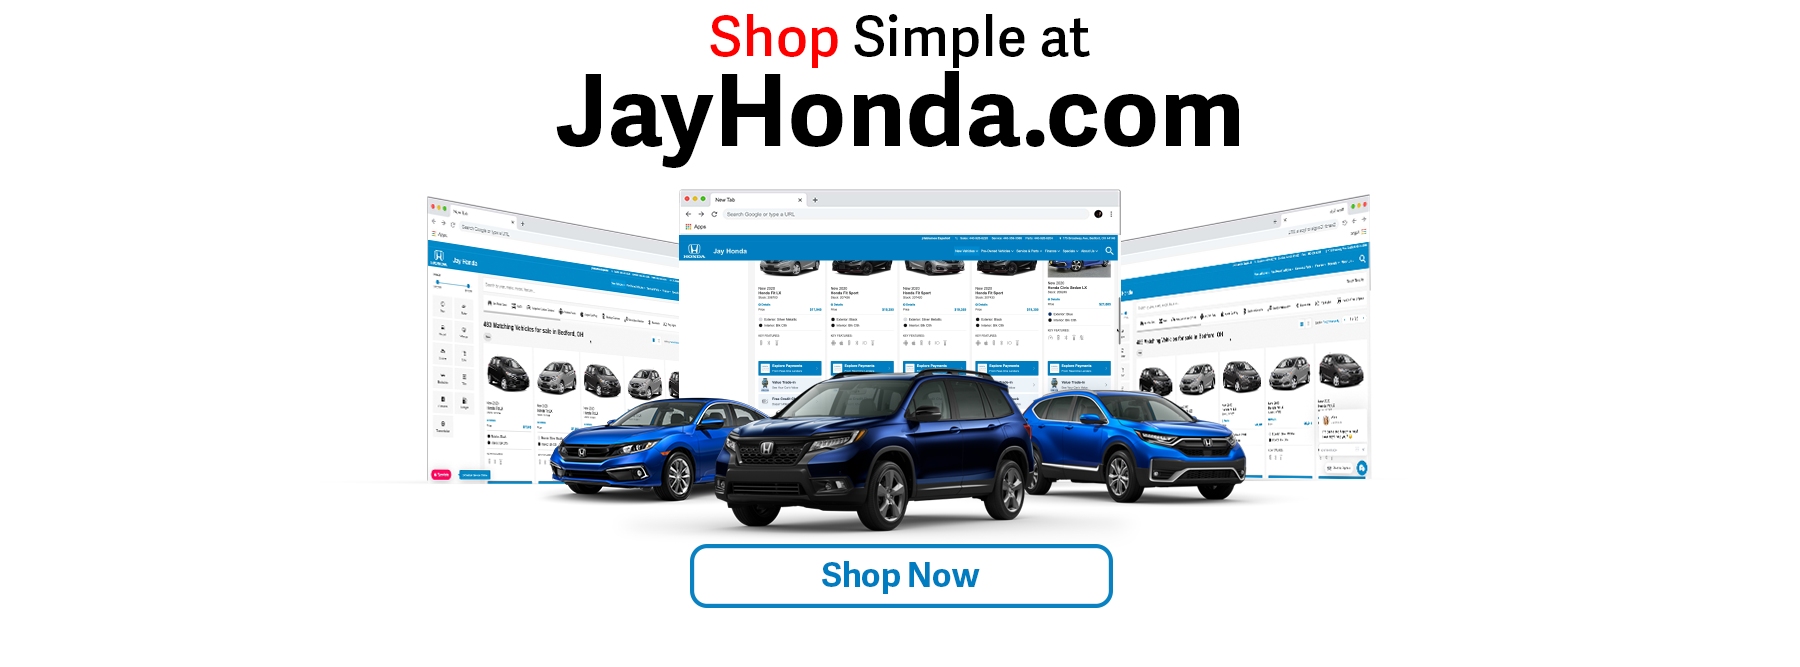 Shop Simple at Jay Honda